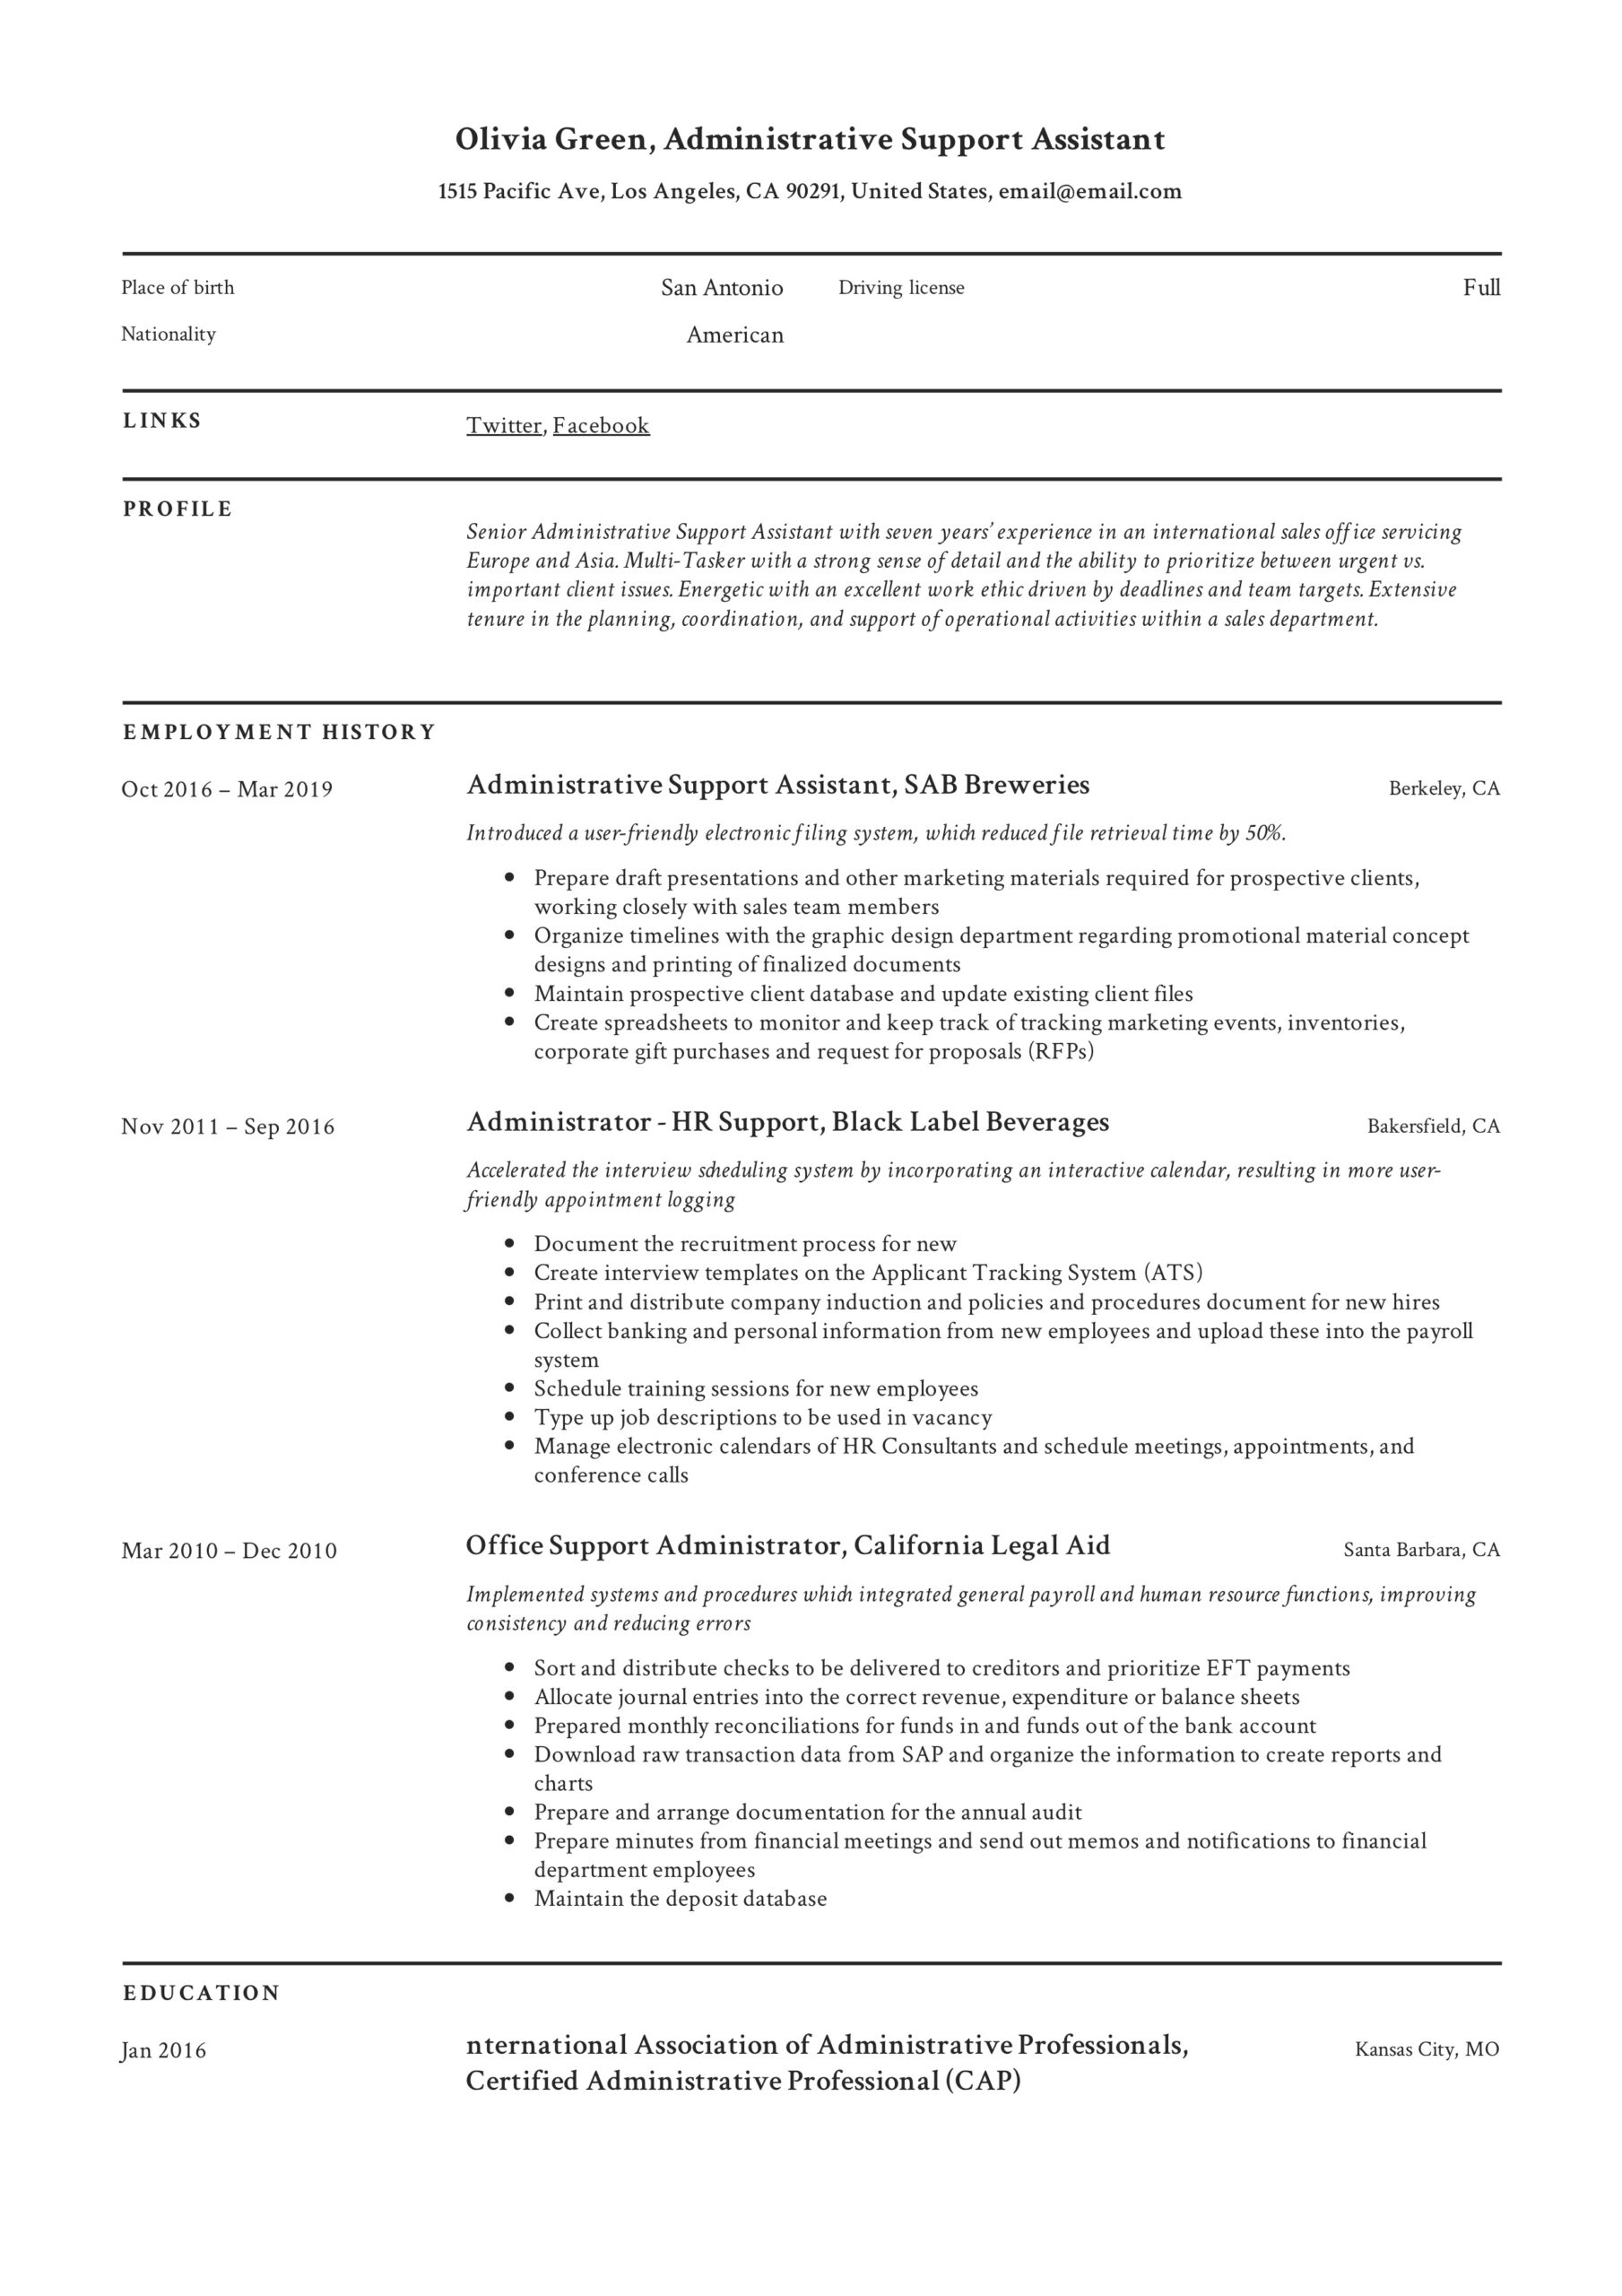 administrative support assistant resume guide pdf resumes accomplishments for olivia free Resume Administrative Assistant Accomplishments For Resume